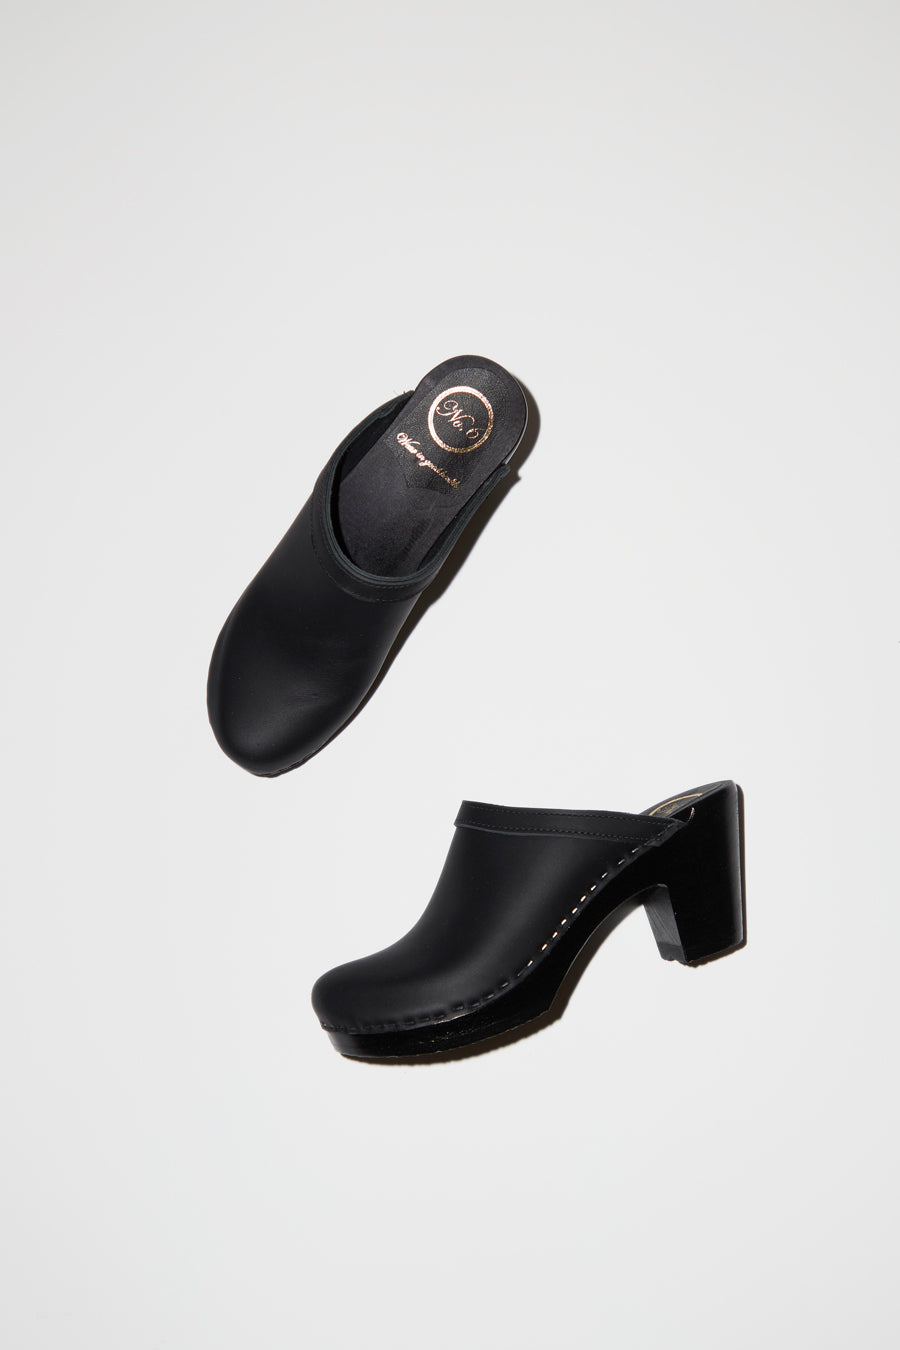 No.6 Old School Clog on High Heel in Black on Black Base